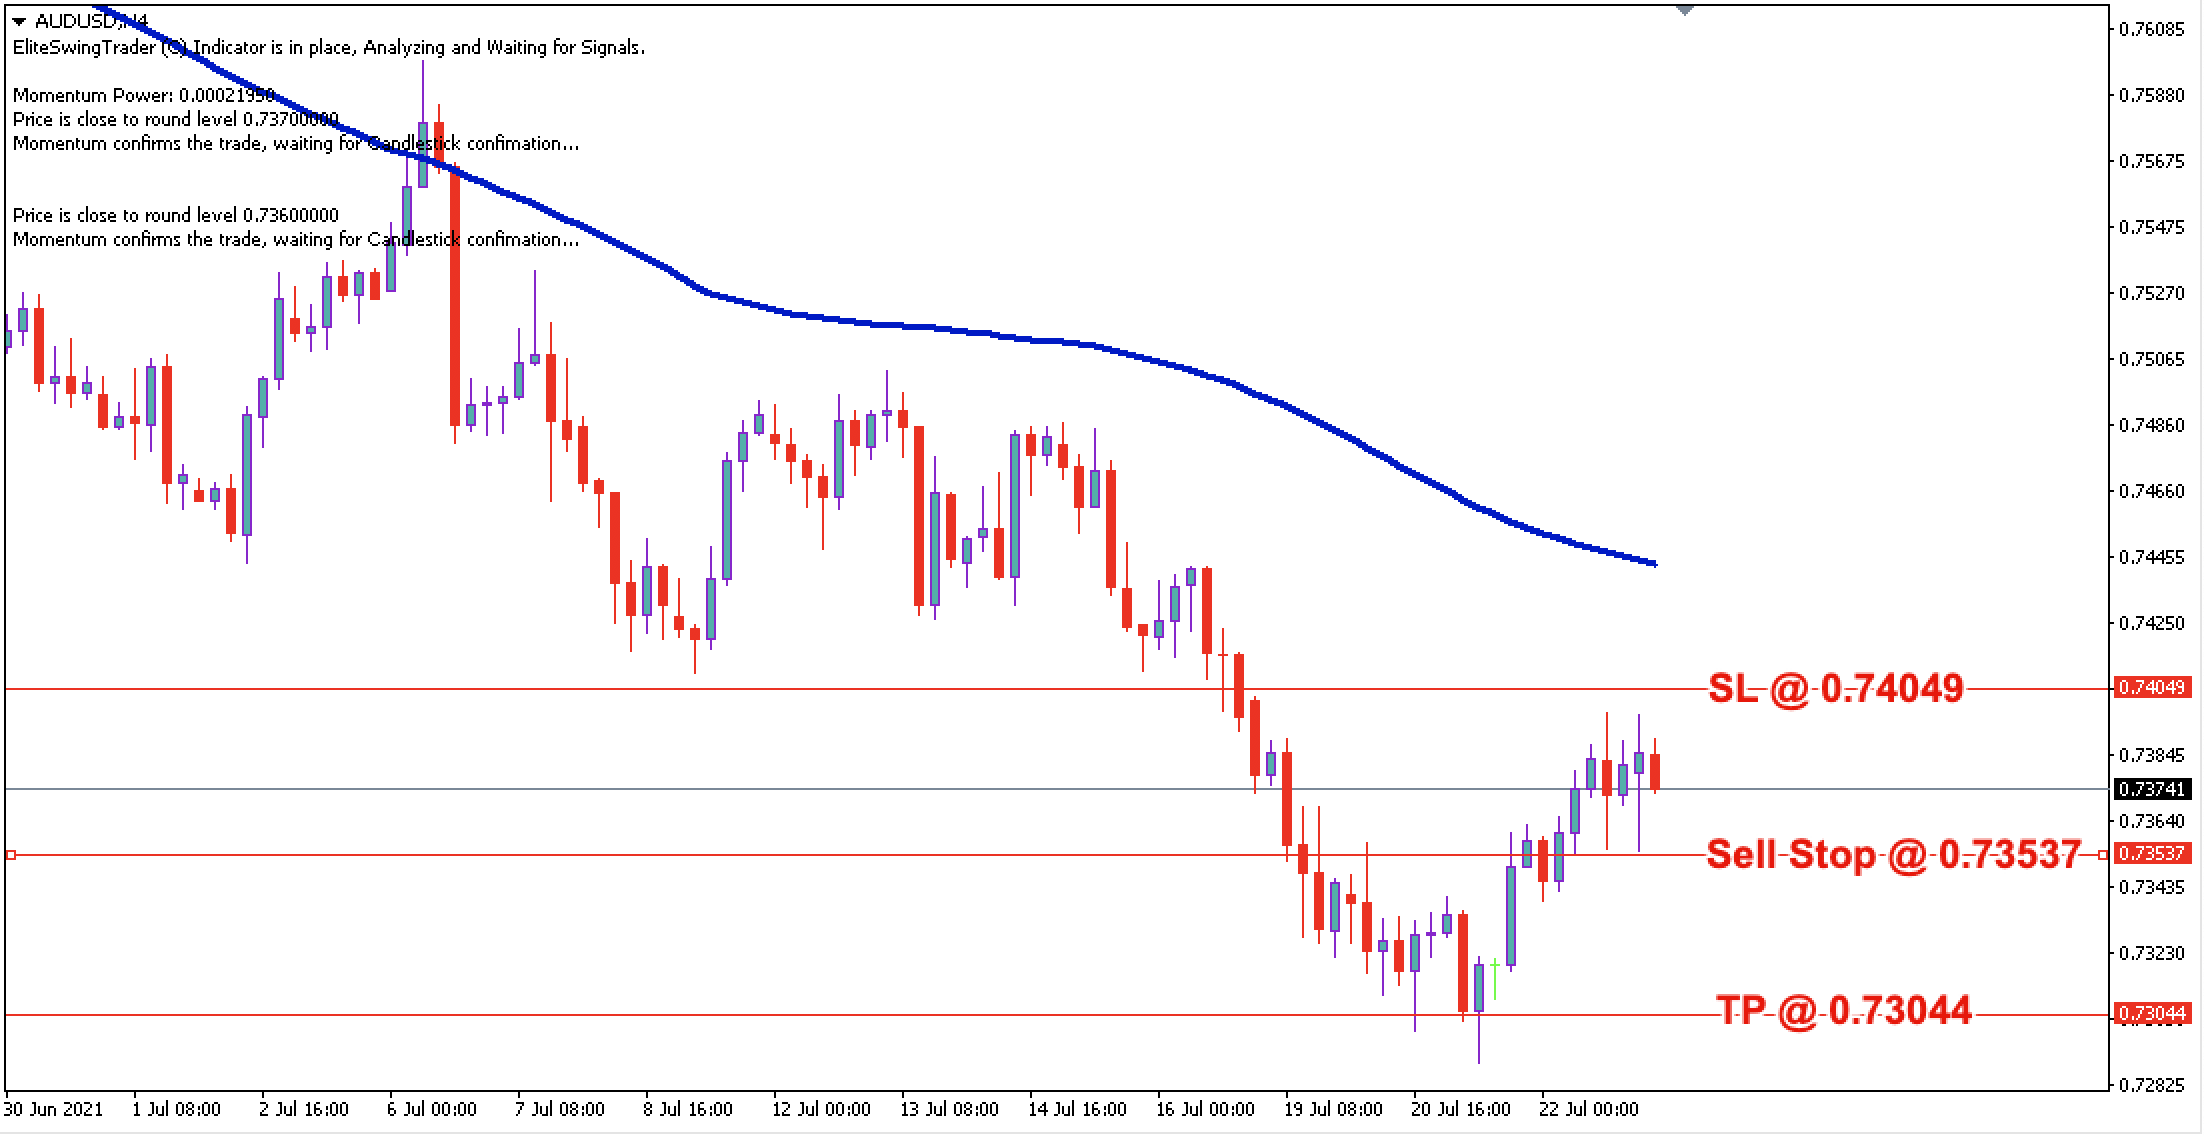 AUD/USD Daily Price Forecast – 23rd July 2021